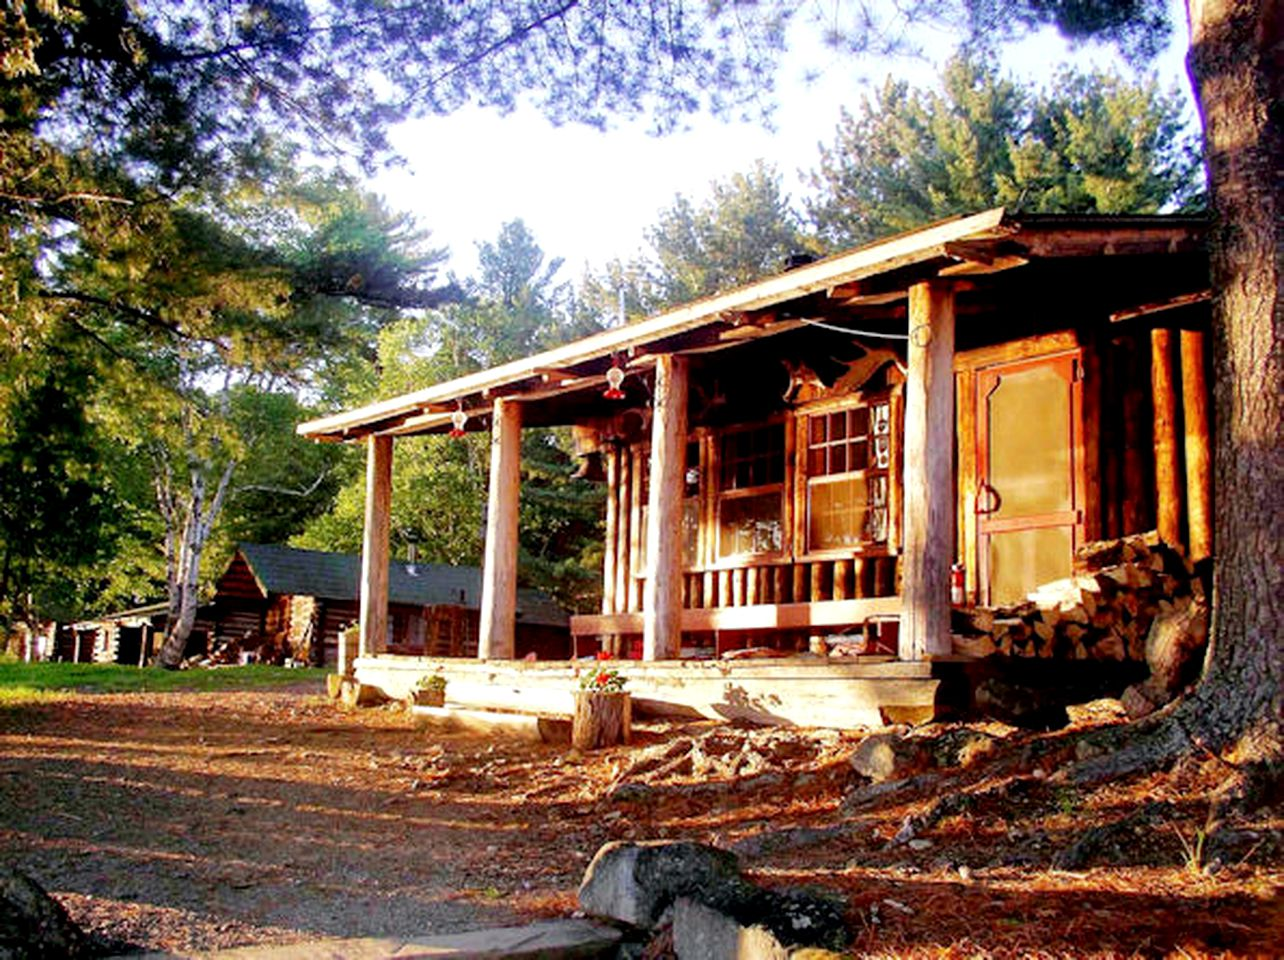 Fishing cabin rental near Ashland, Maine